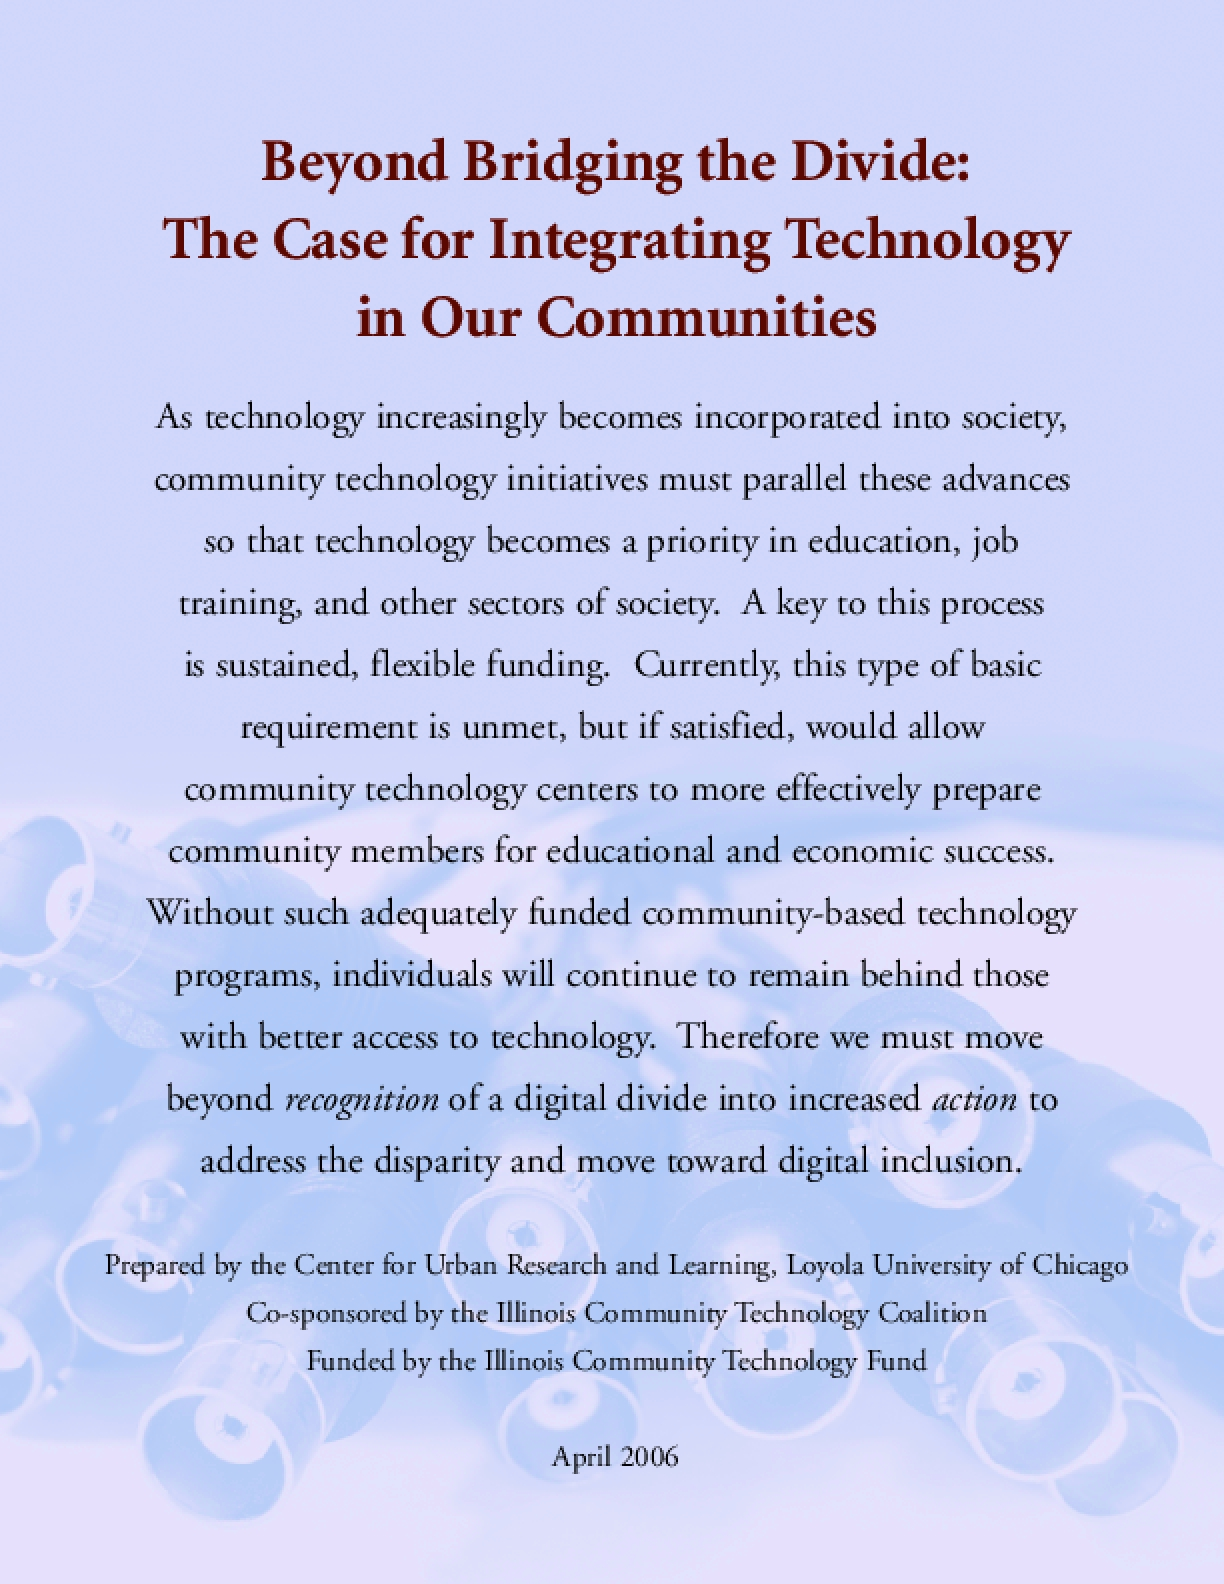 Beyond Bridging the Divide: The Case for Integrating Technology in Our Communities